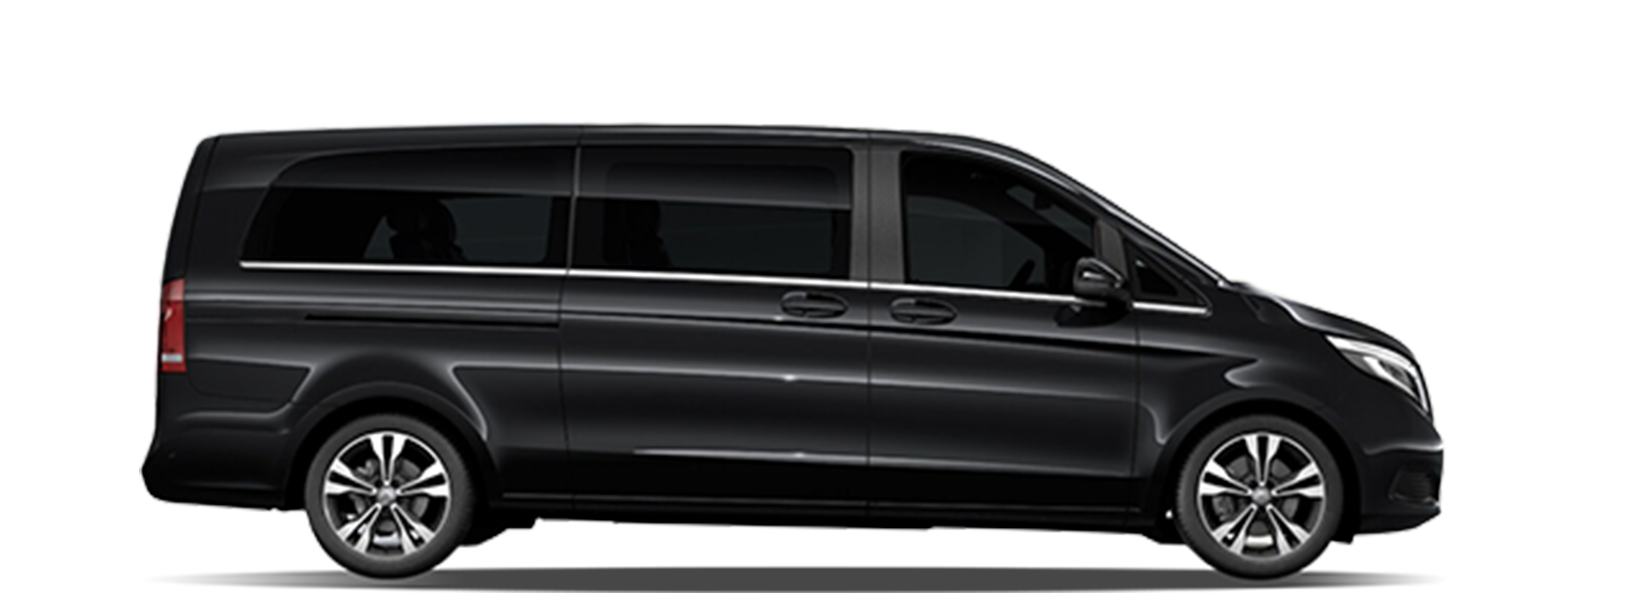 MERCEDES V-CLASS  Sets the benchmark for luxury MPV's and the pinnacle of refined people movers.